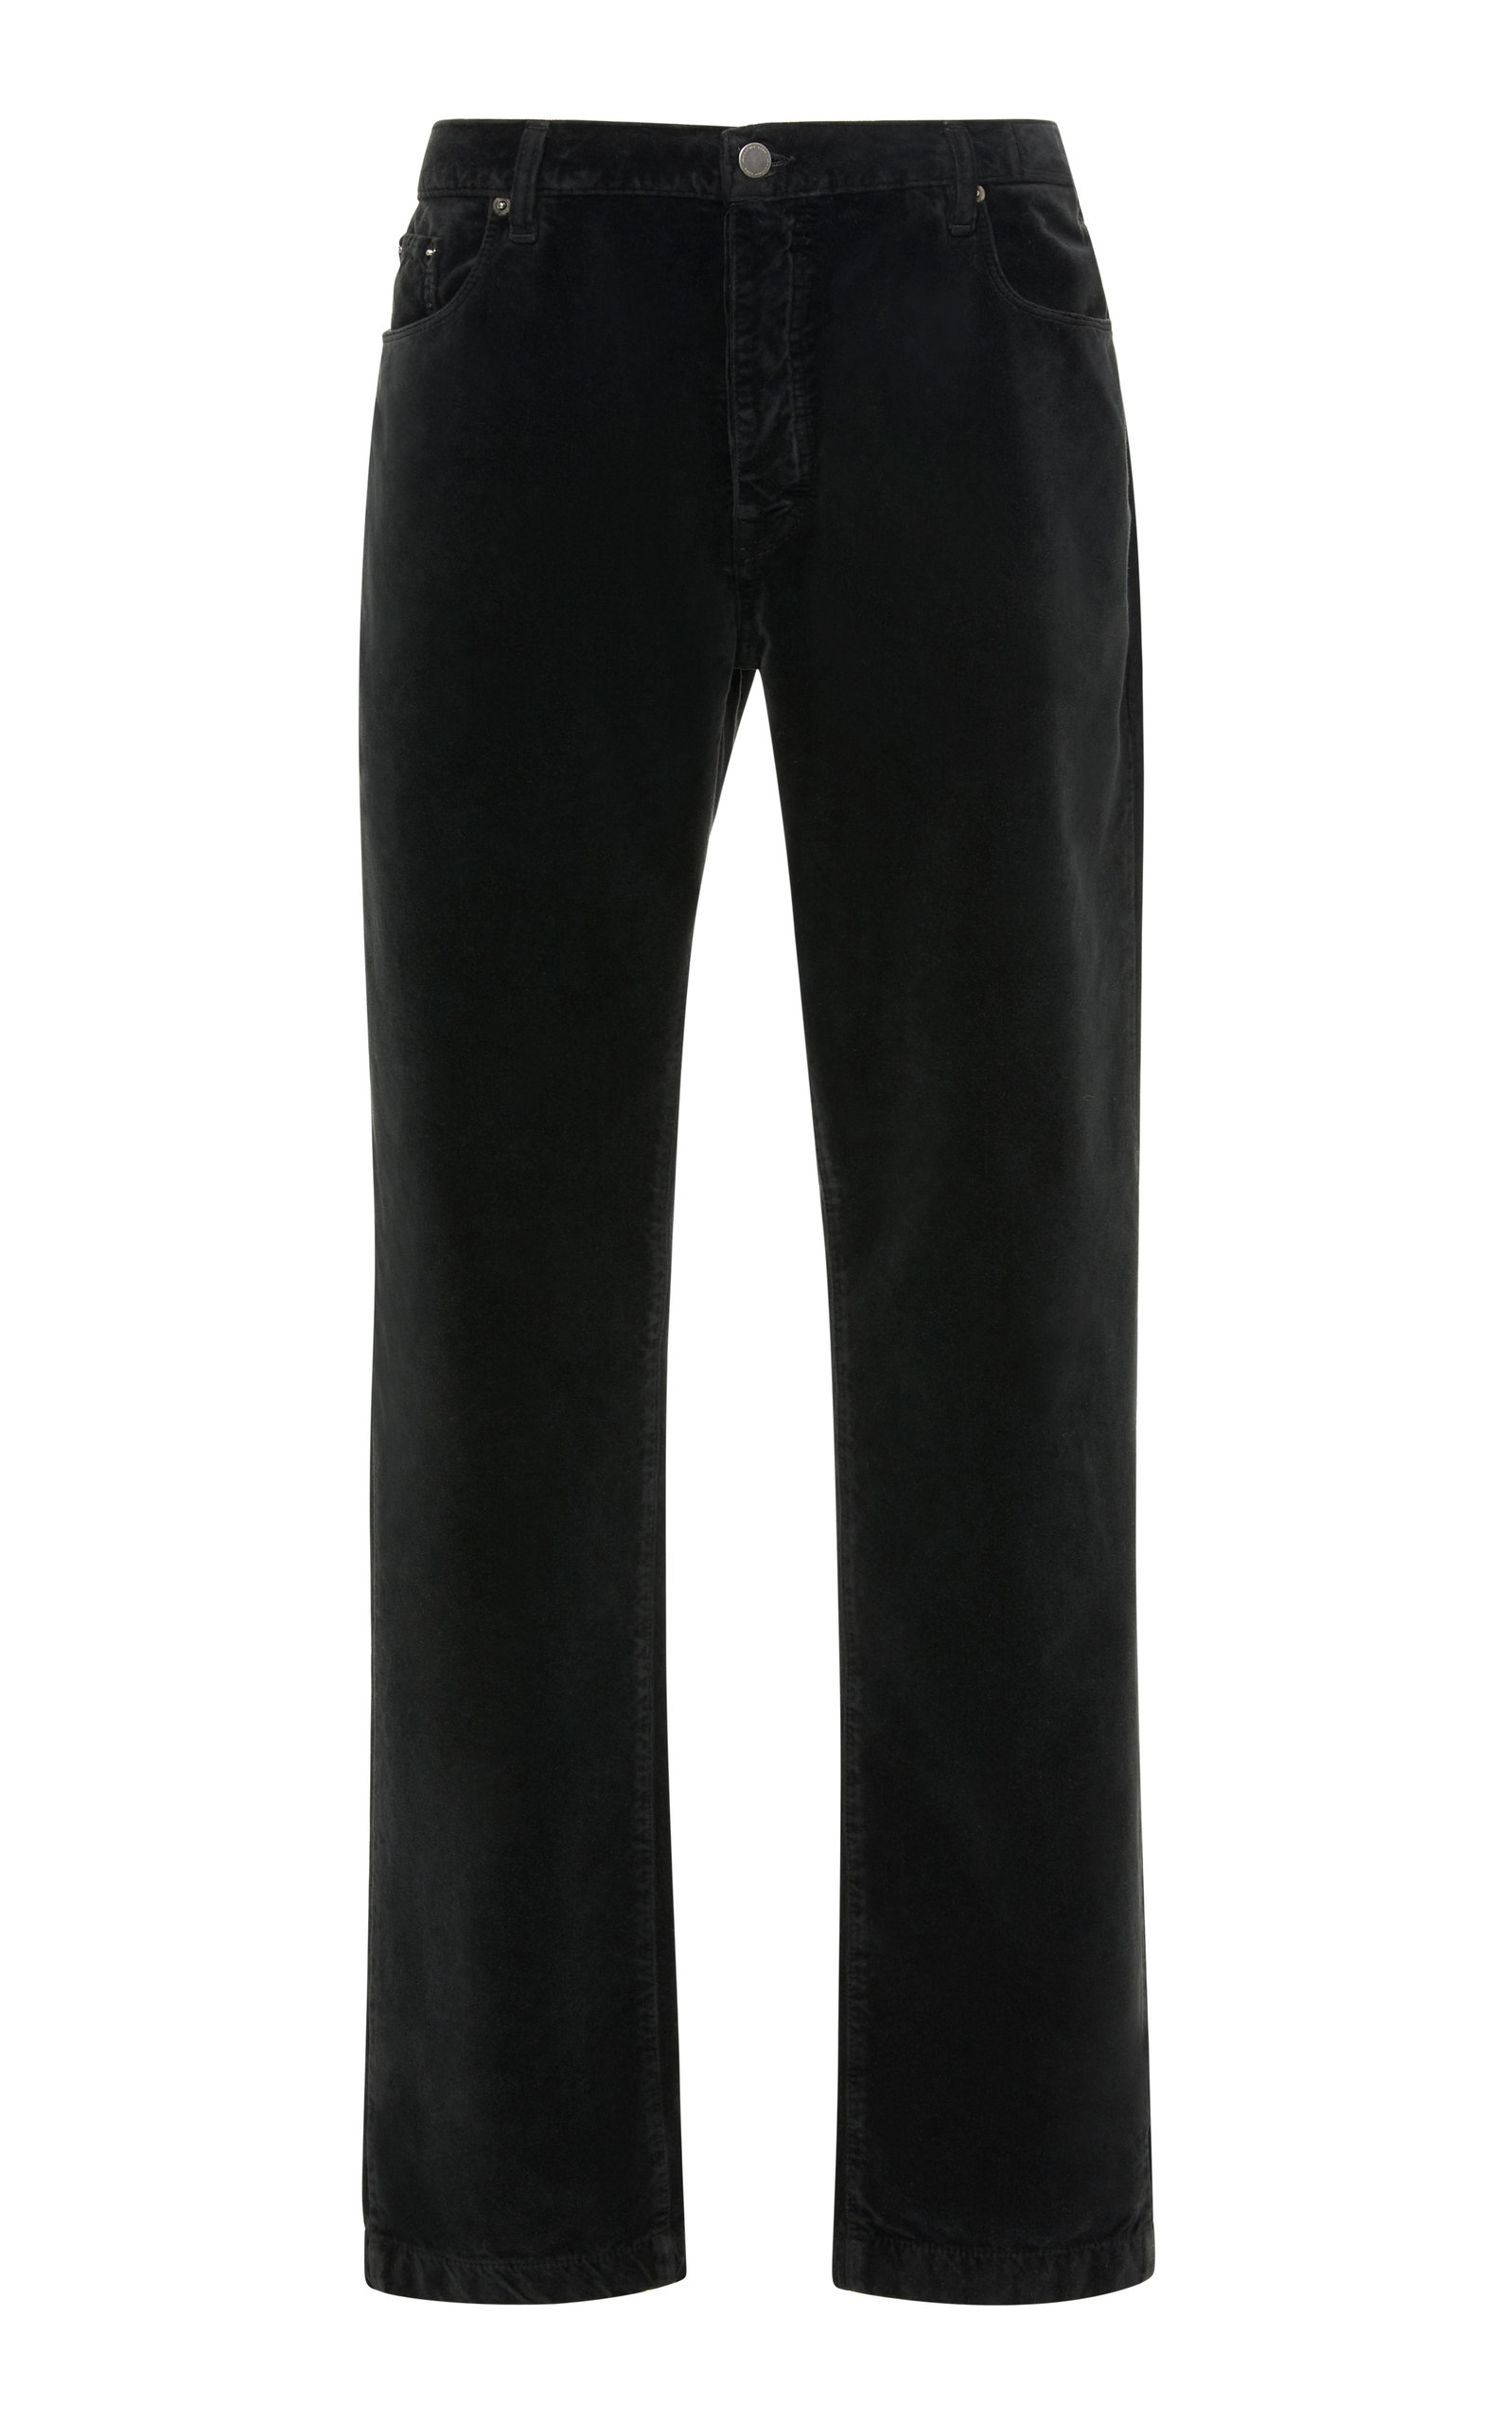 MASSIMO ALBA BRUSHED VELVET CHINOS